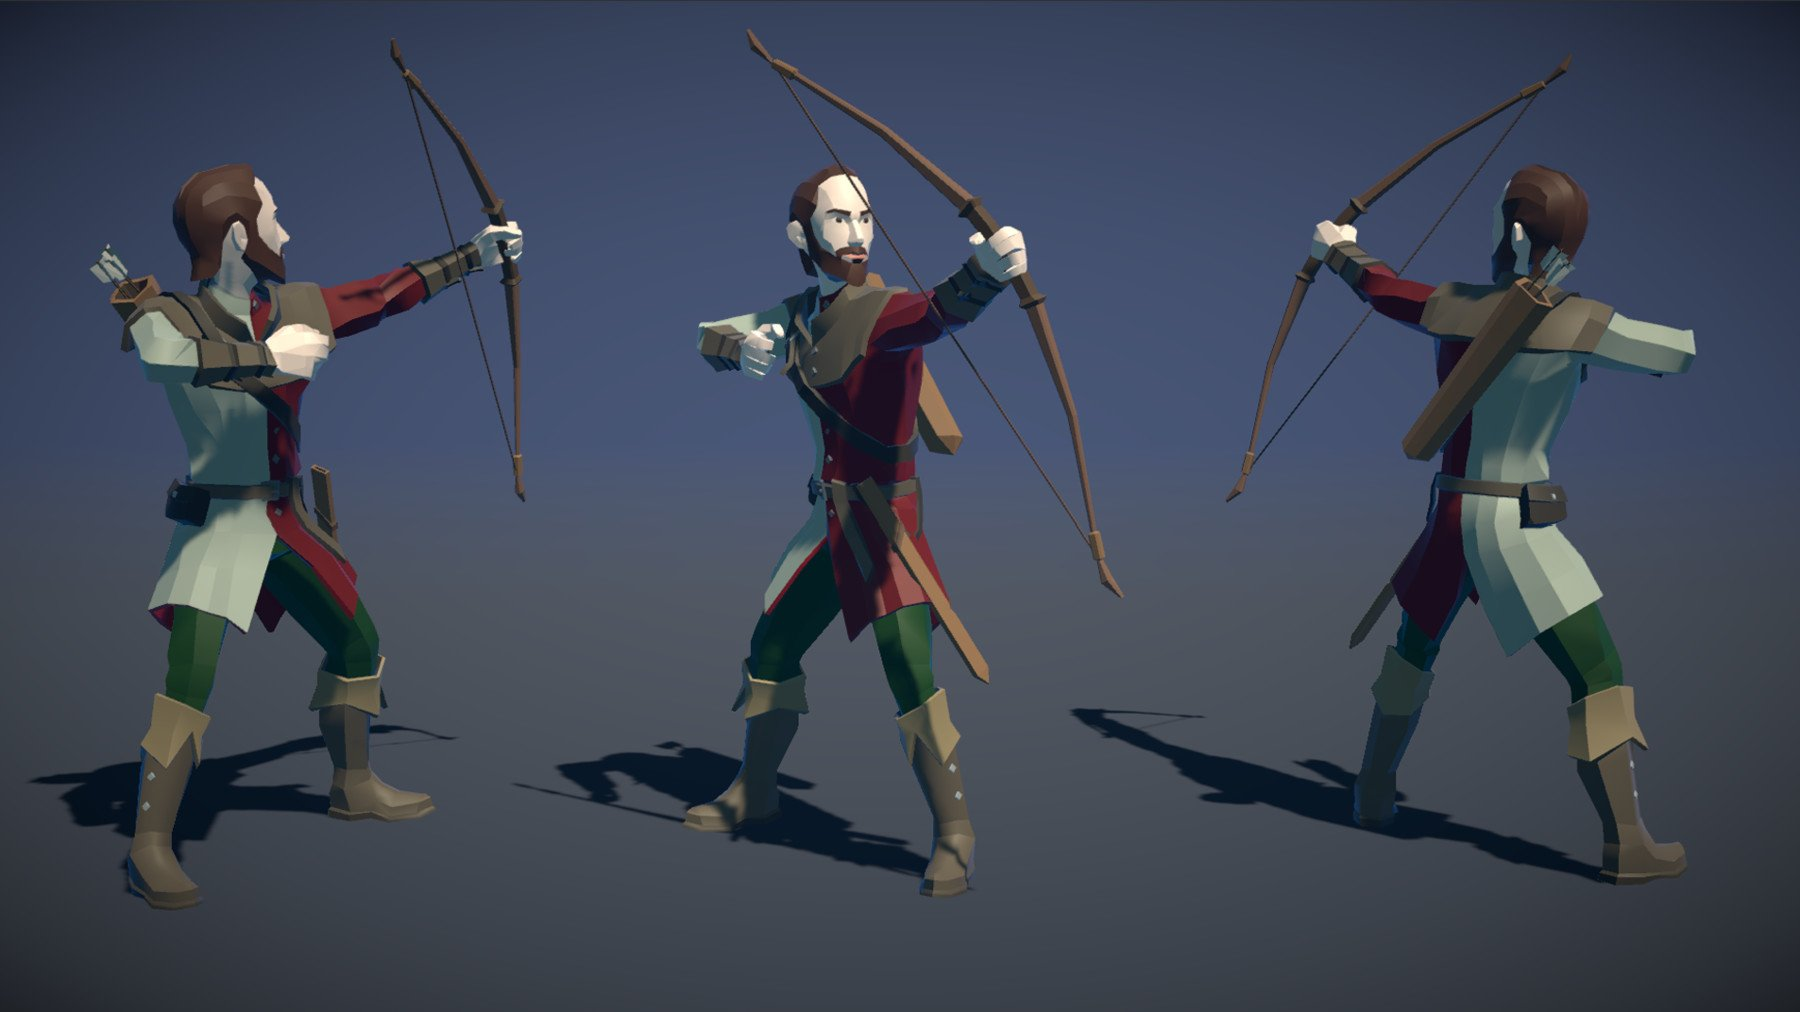 Pt medieval lowpoly characters archer 02